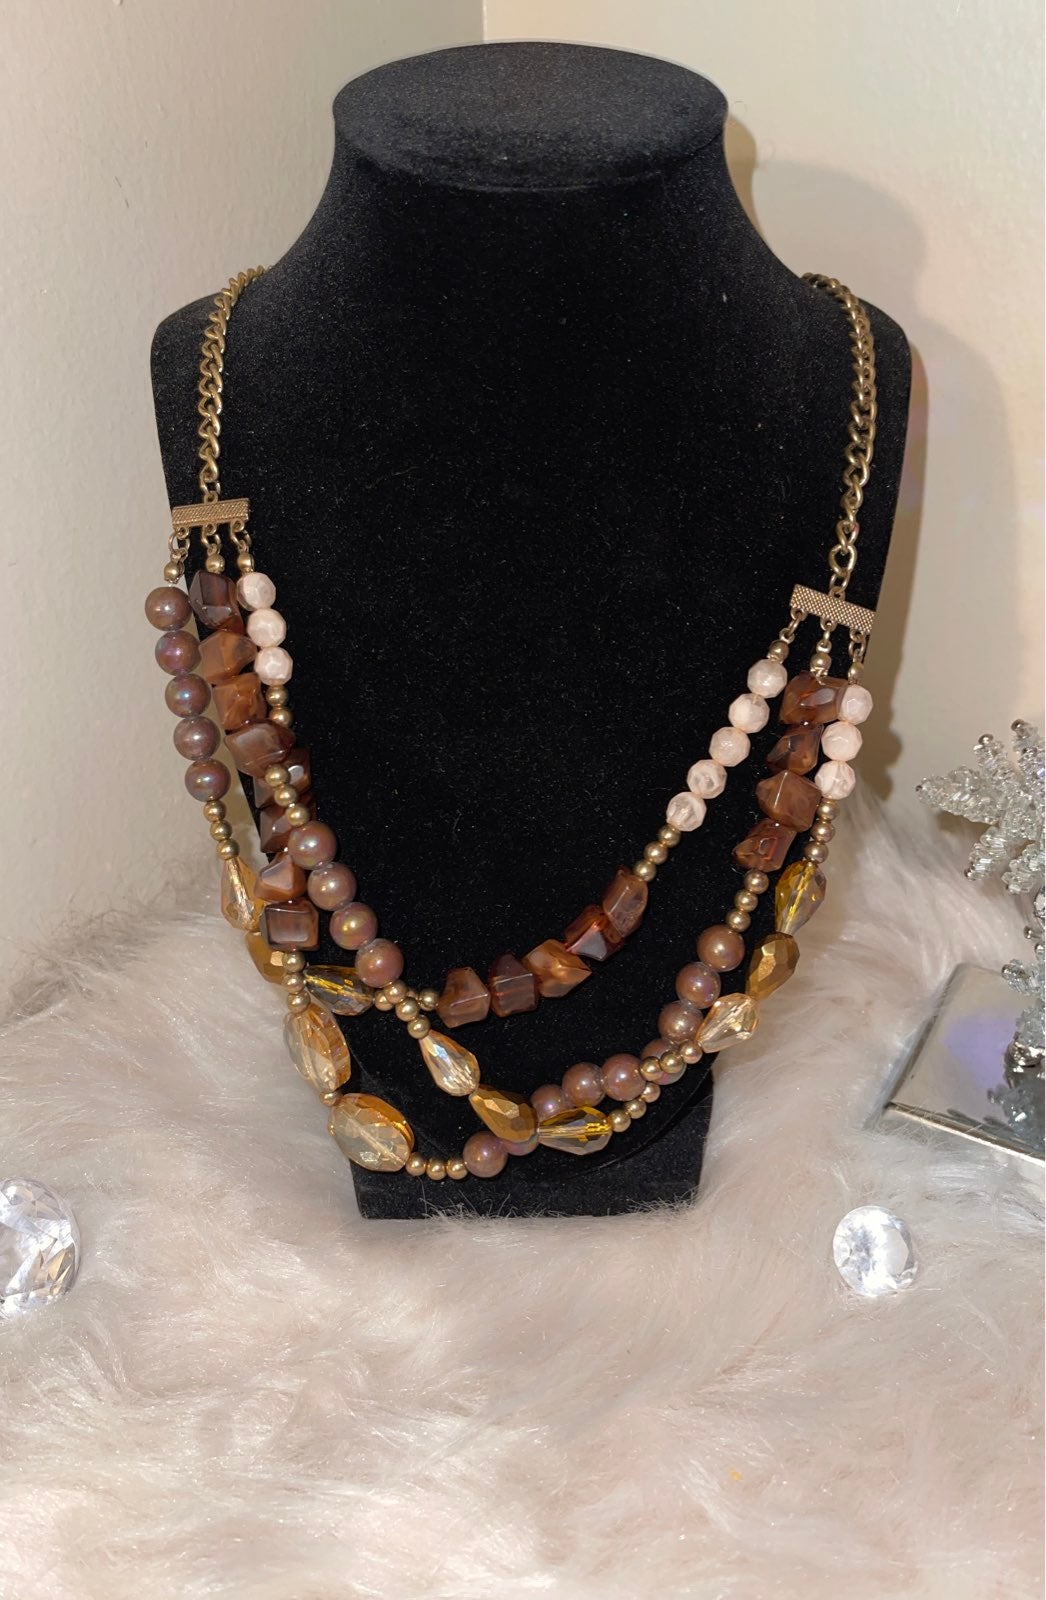 Necklace and earring set.Avenue